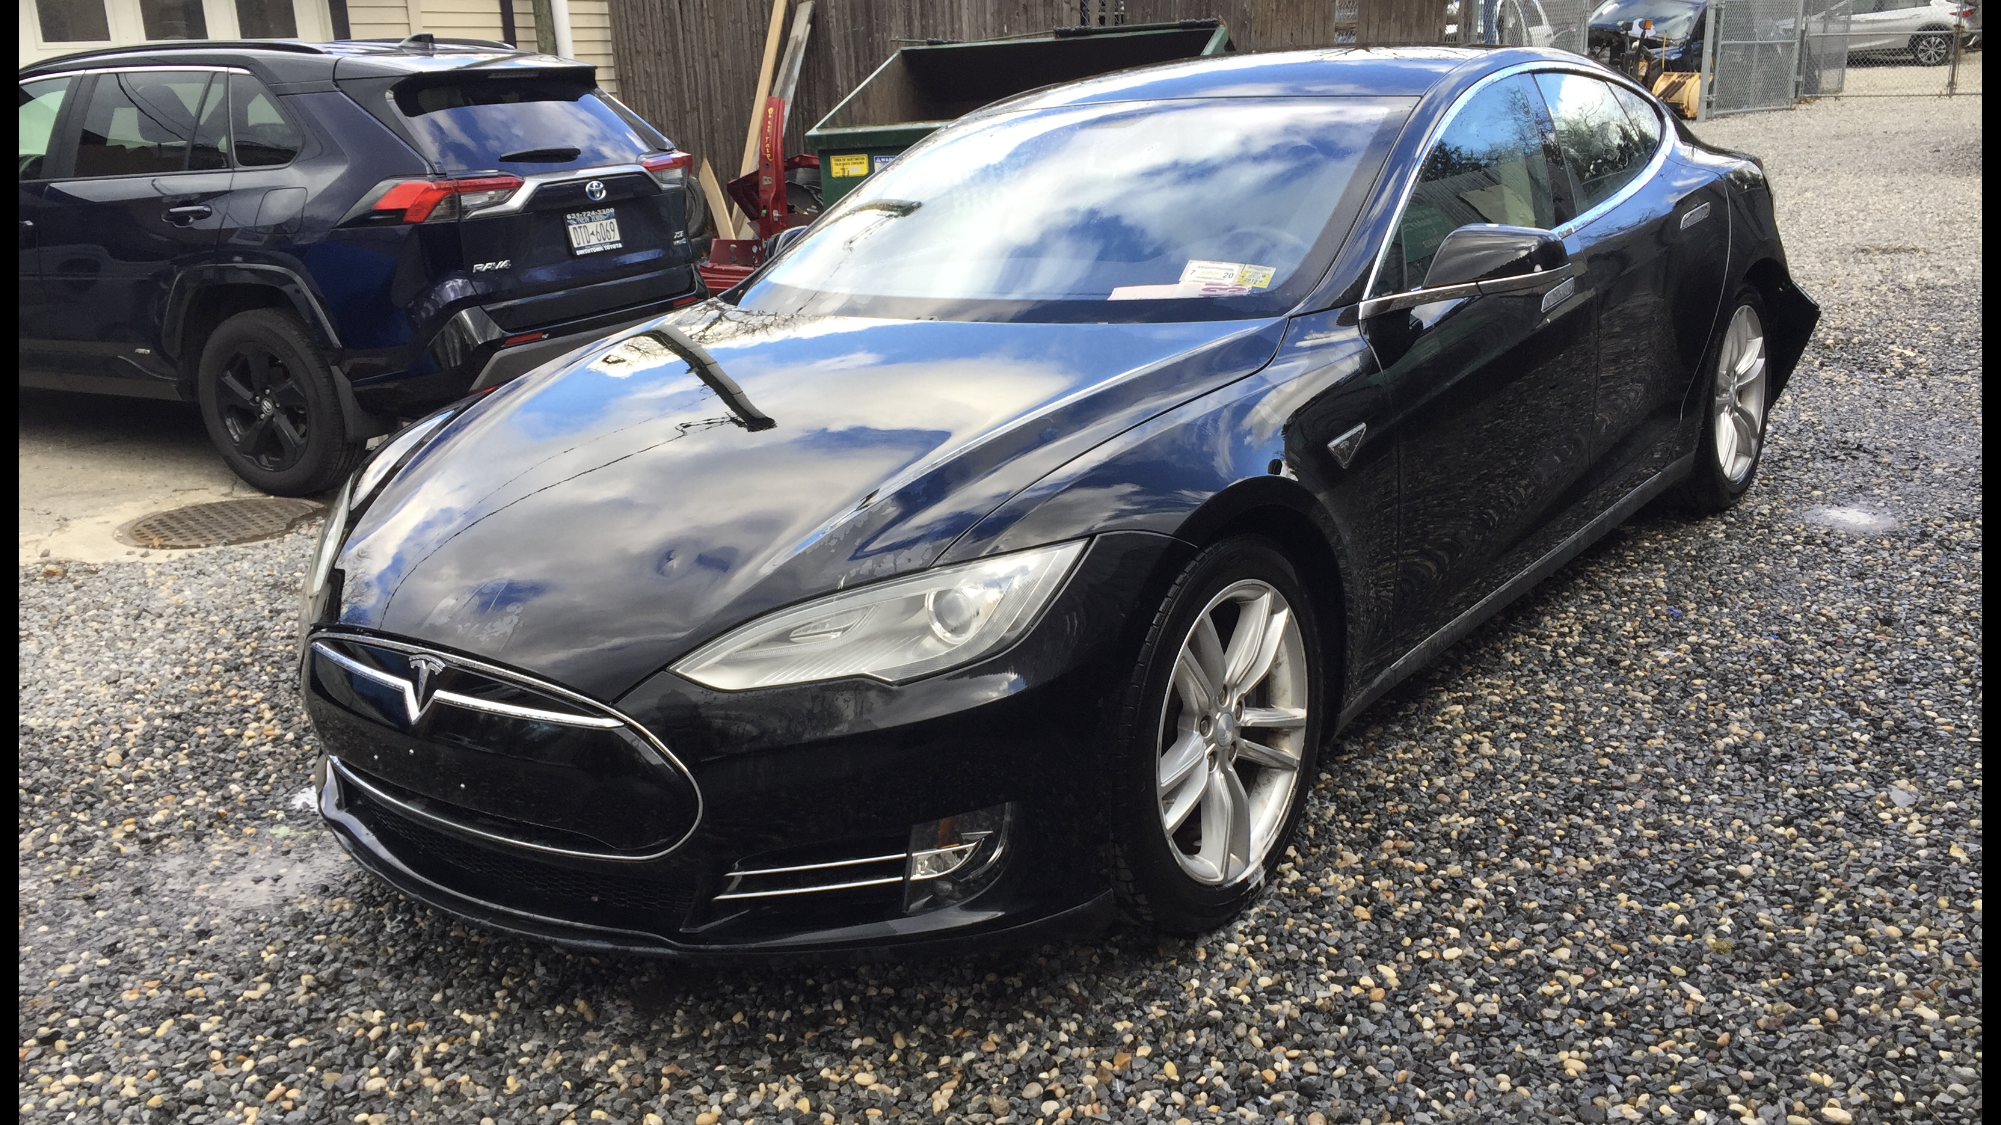 2012 Tesla model S 85, loaded, runs and drives, light damage to rear. $22,999 full